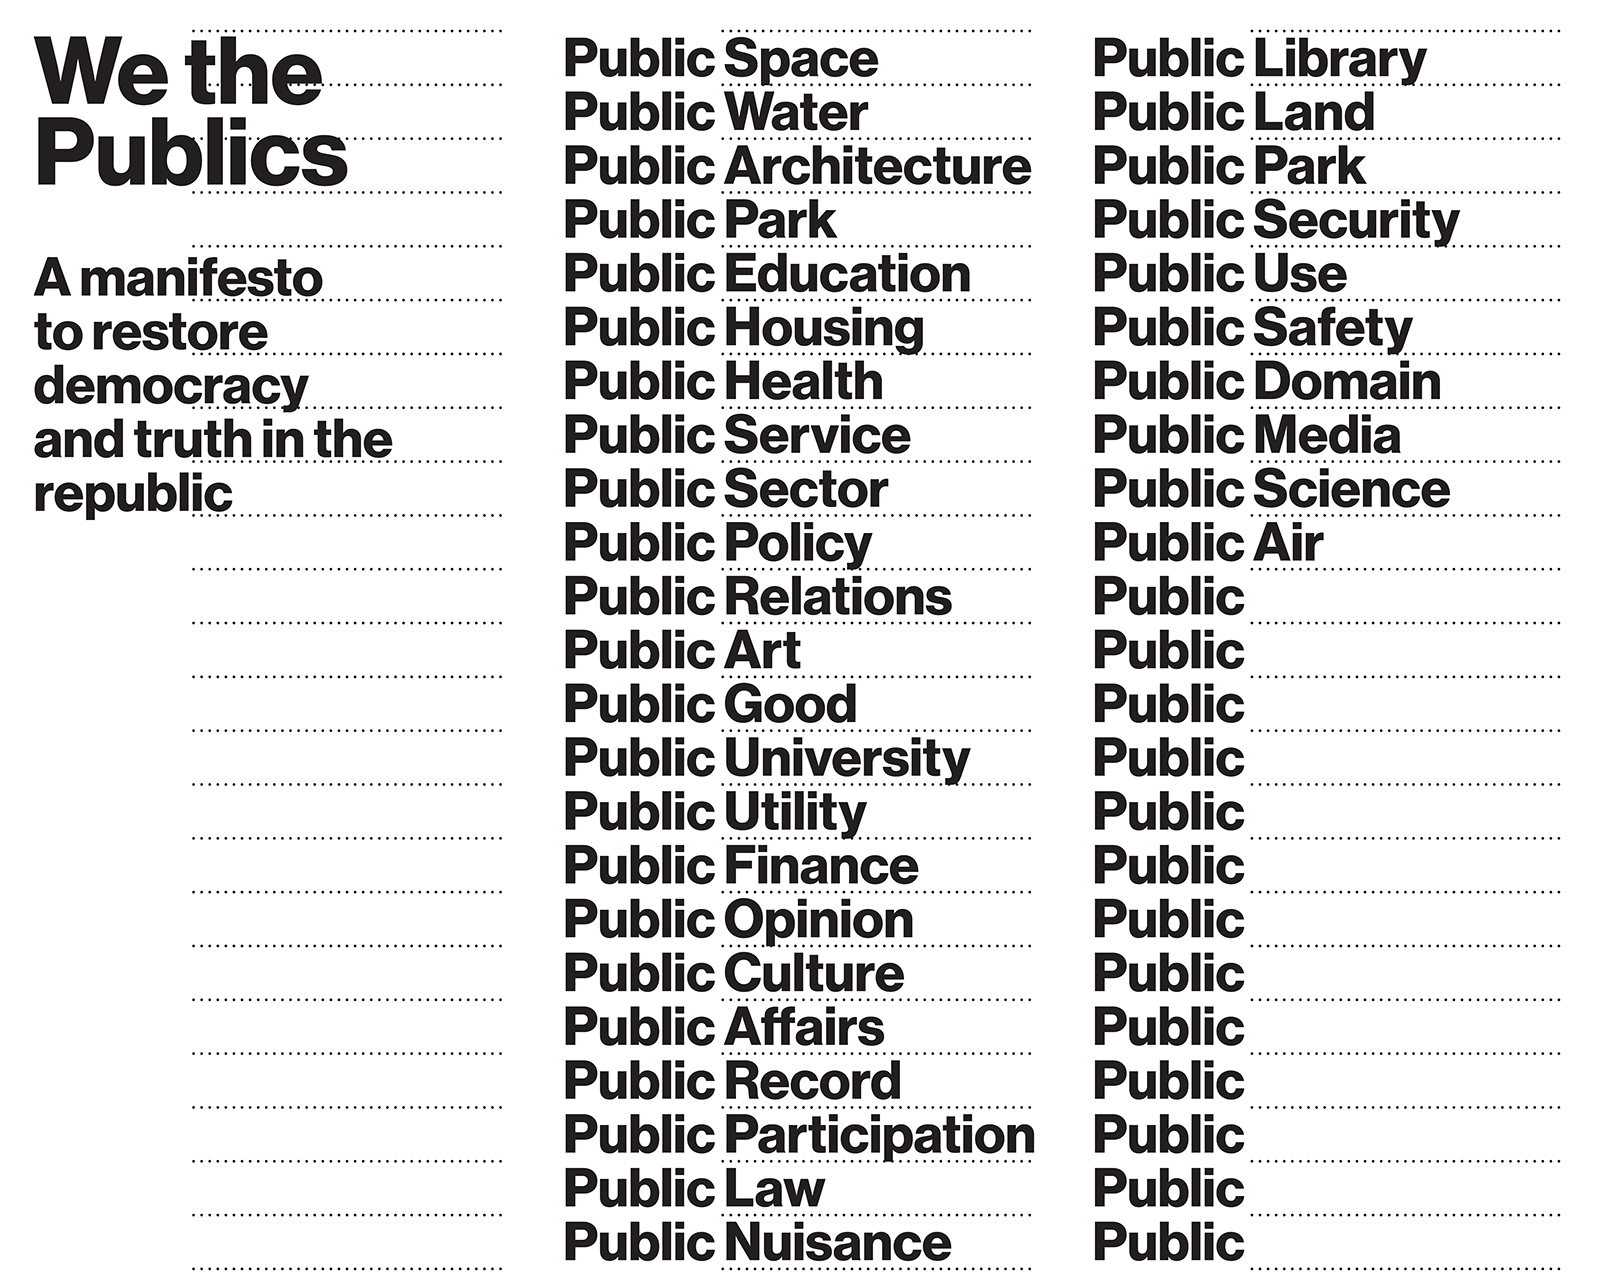 We the Publics: A manifesto to restore democracy and truth